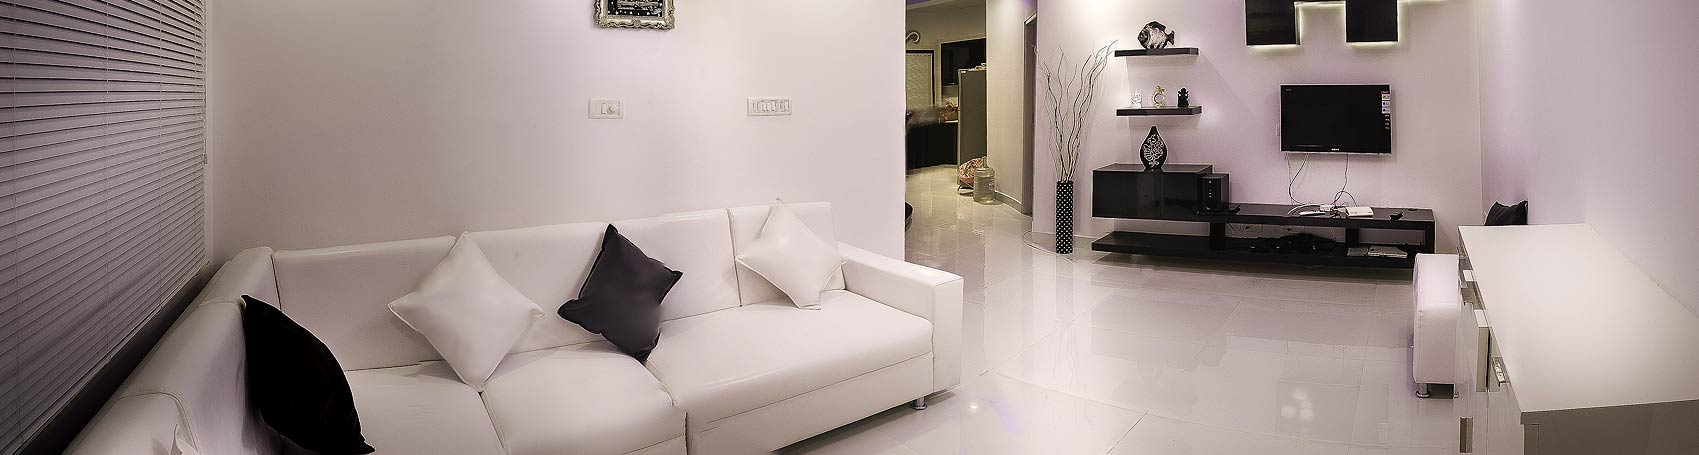 Sale of luxury apartments in Ibiza. Advice and management in the purchase of apartments Ibiza. Consulting Services Ibiza